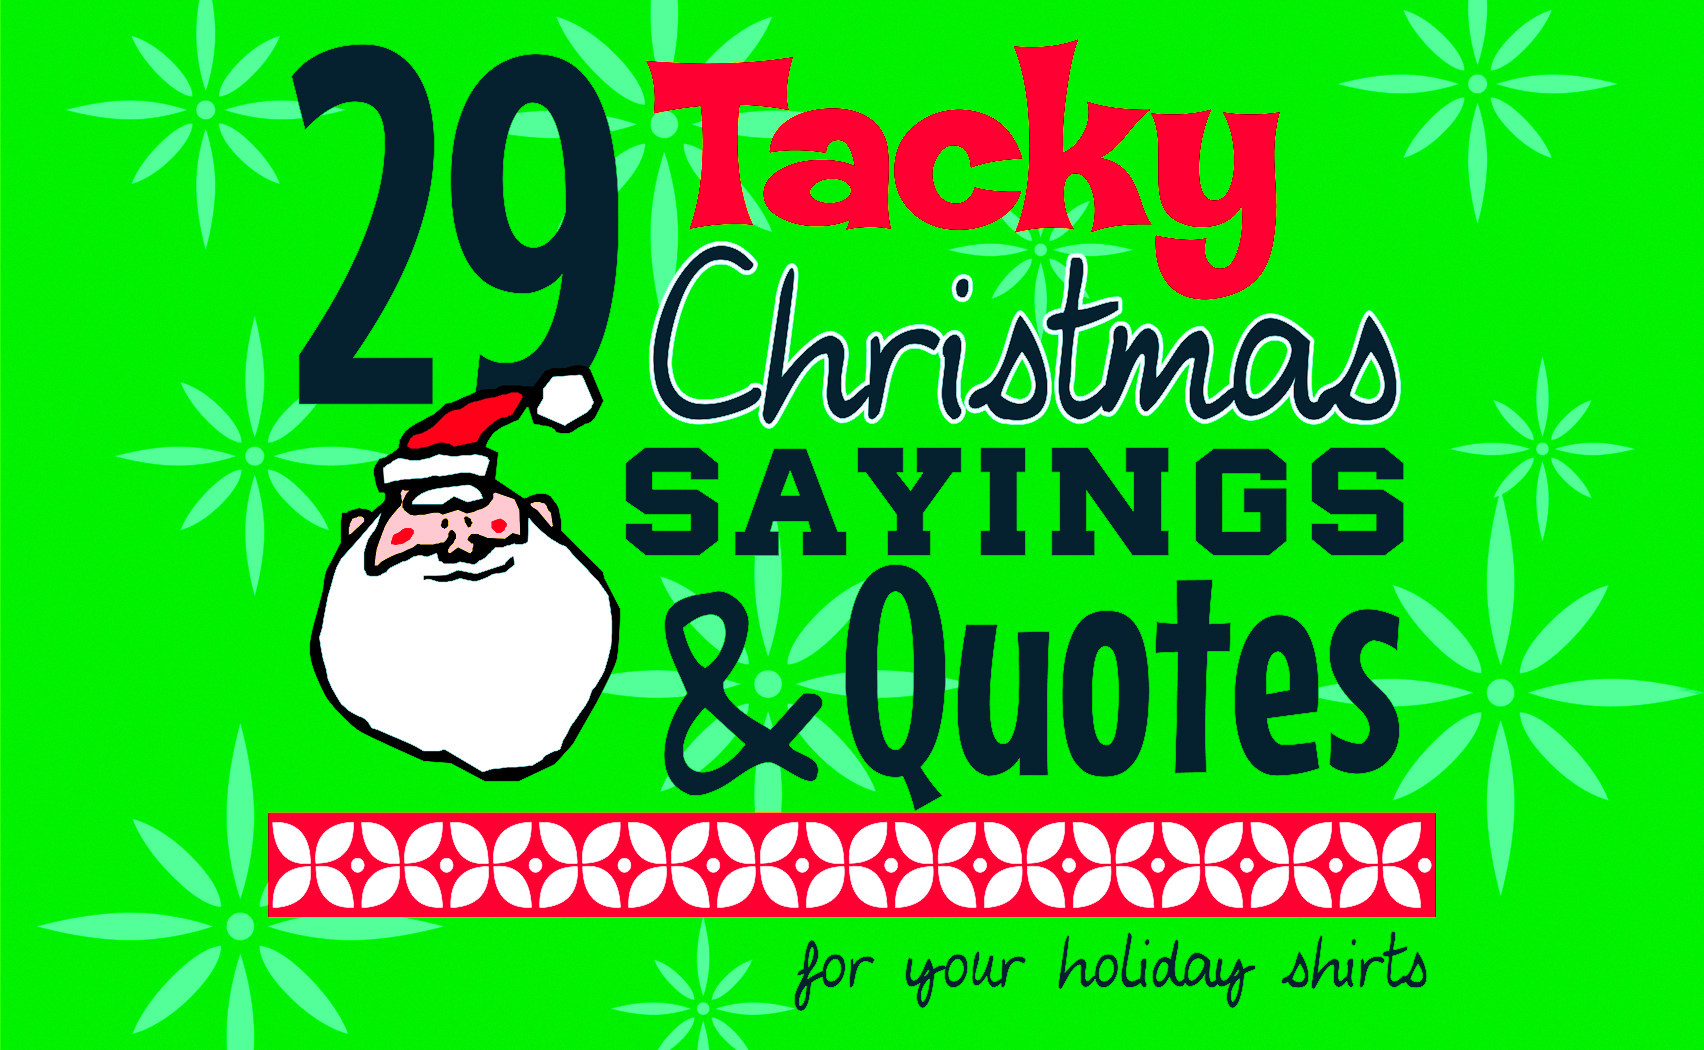 IZA Design Blog|Tacky Christmas Sayings and Quotes